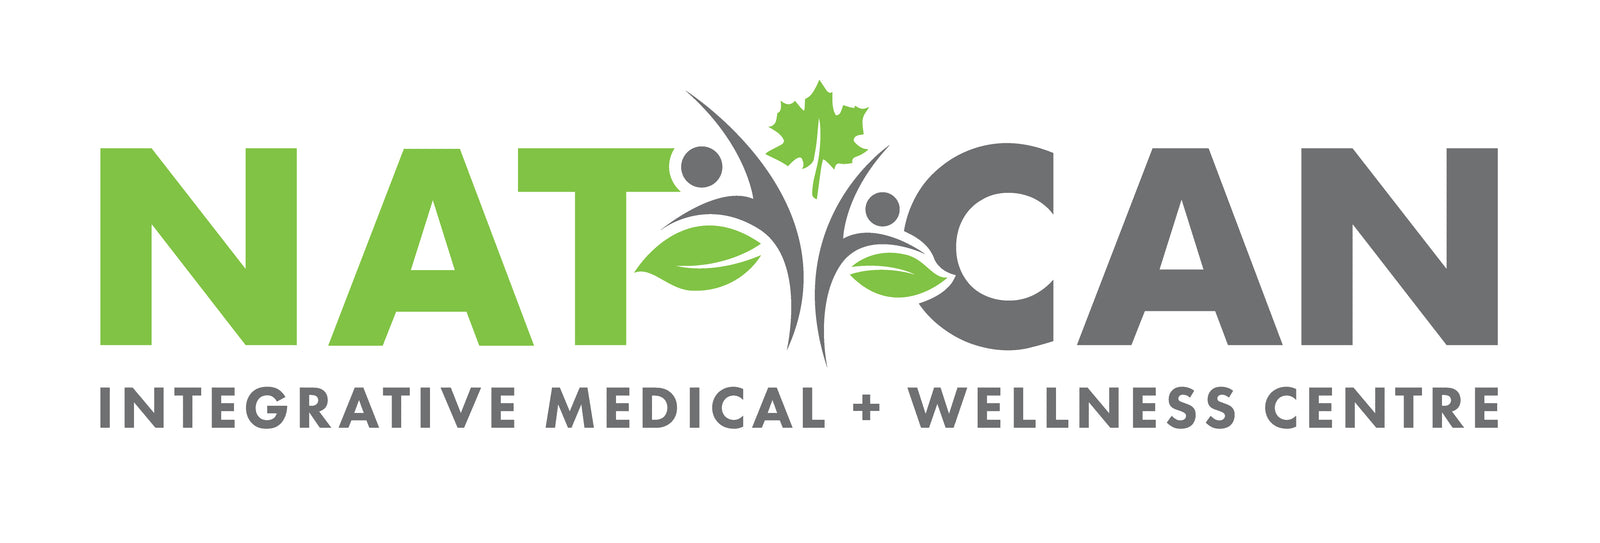 Dr. Santos is a Naturopathic Doctor practicing in Vaughan, ON with a focus in fertility. The wellness clinic includes physiotherapy, chiropractic and RMT.